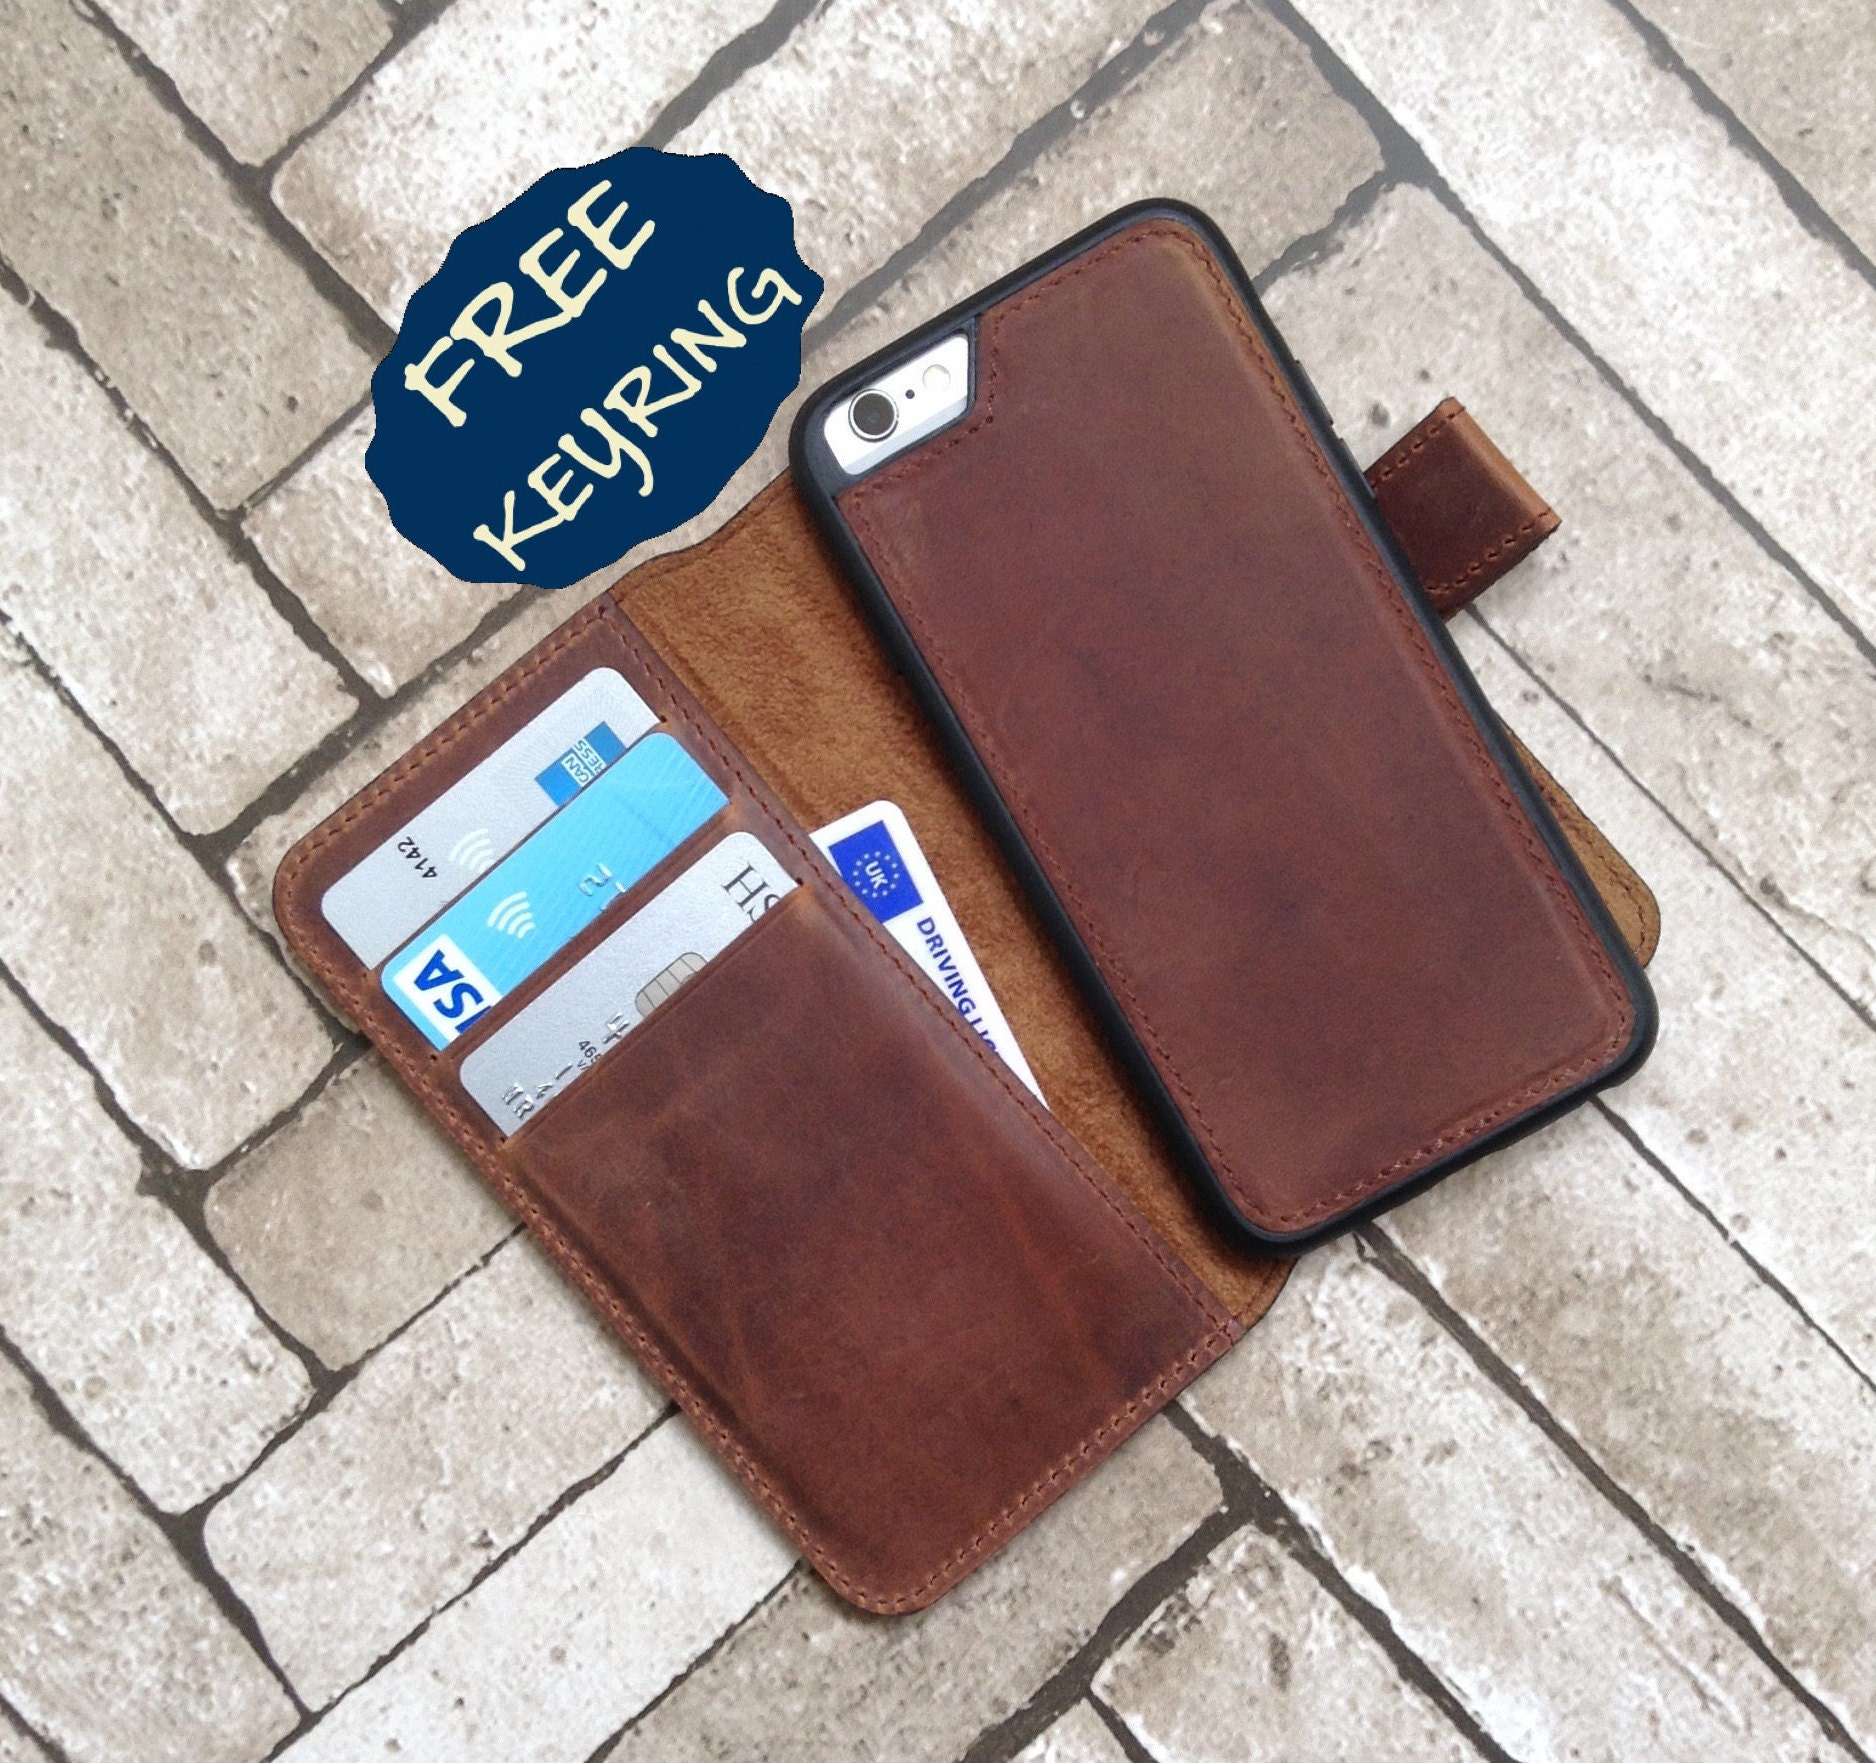 Personalized Leather iPhone 6 Case Leather iPhone 6s Case Leather iPhone Case Detachable iPhone 6 Wallet Case iPhone 6s Wallet Case iPhone